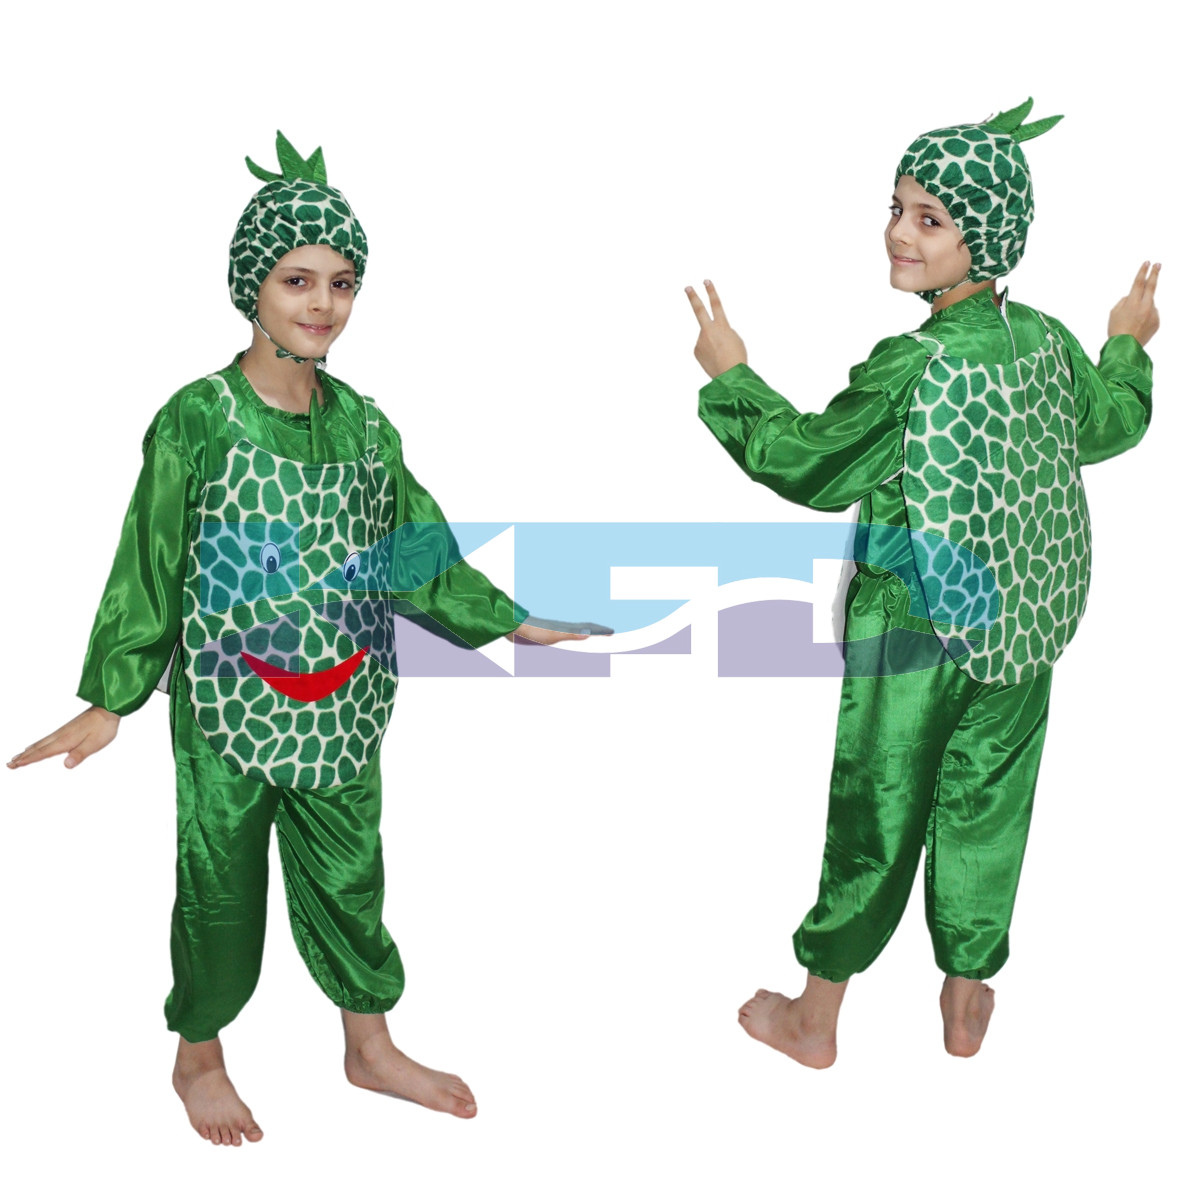 Pineapple fancy dress for kids,Fruits Costume for School Annual function/Theme Party/Competition/Stage Shows Dress